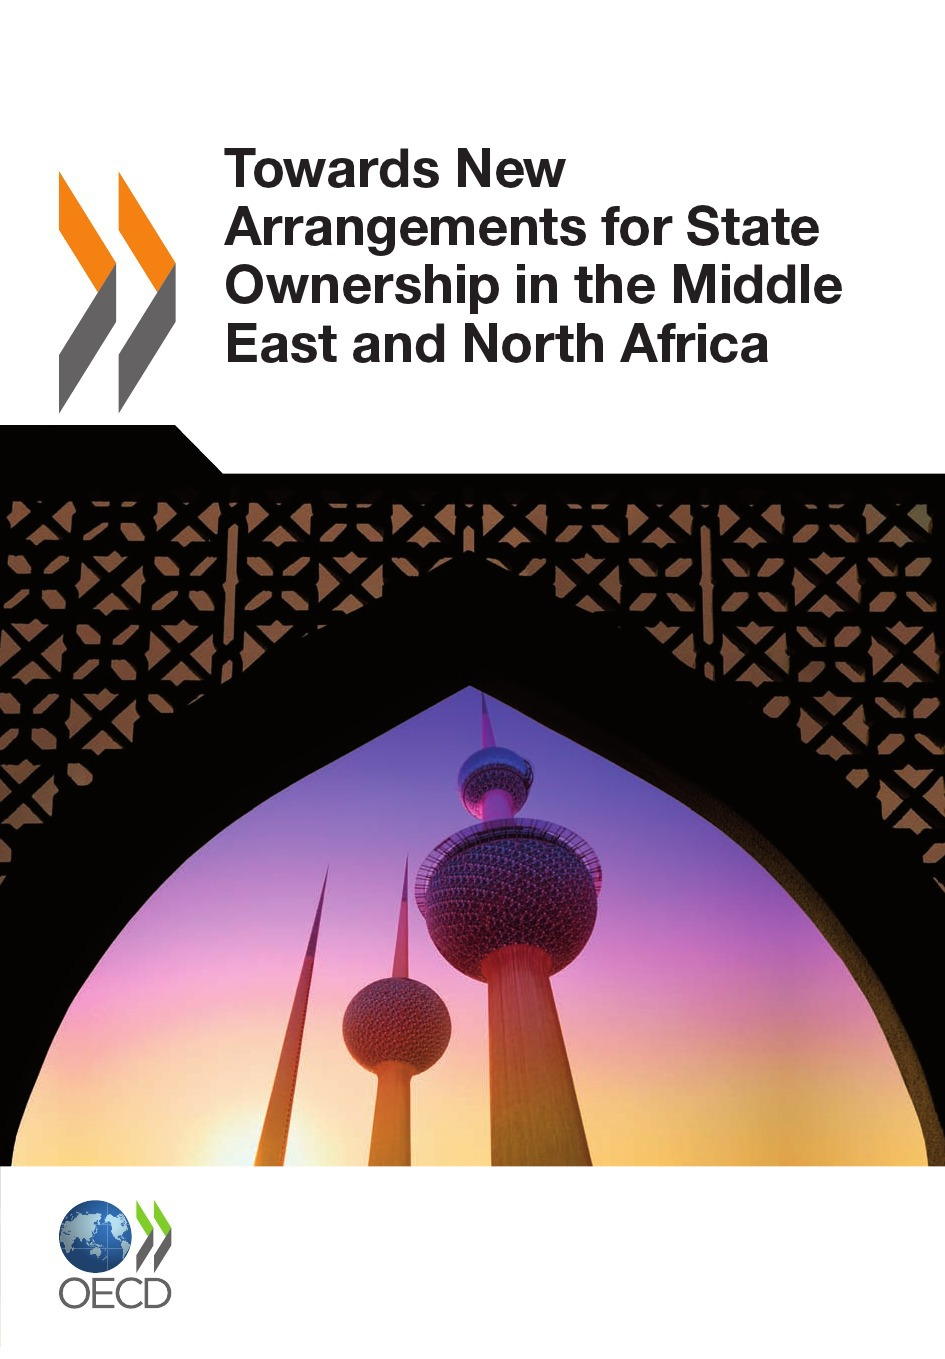 Towards New Arrangements for State Ownership in the Middle East and North Africa